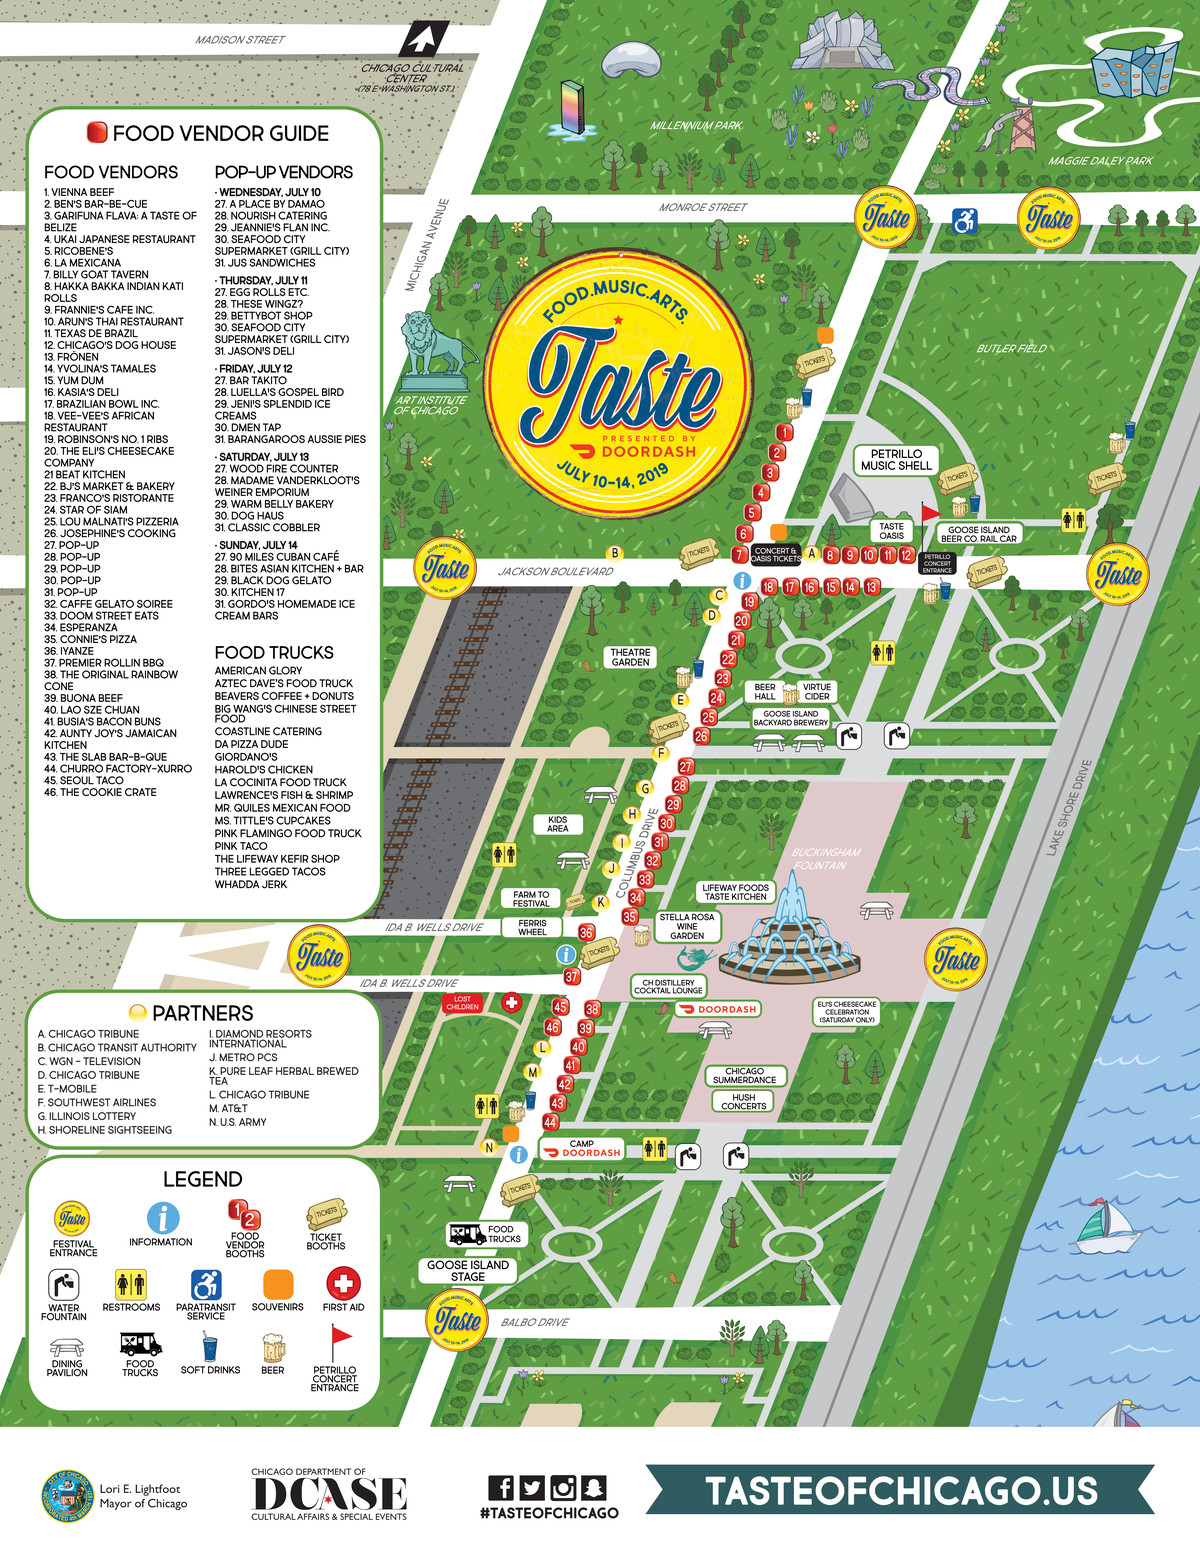 The 2019 Taste of Chicago site map.